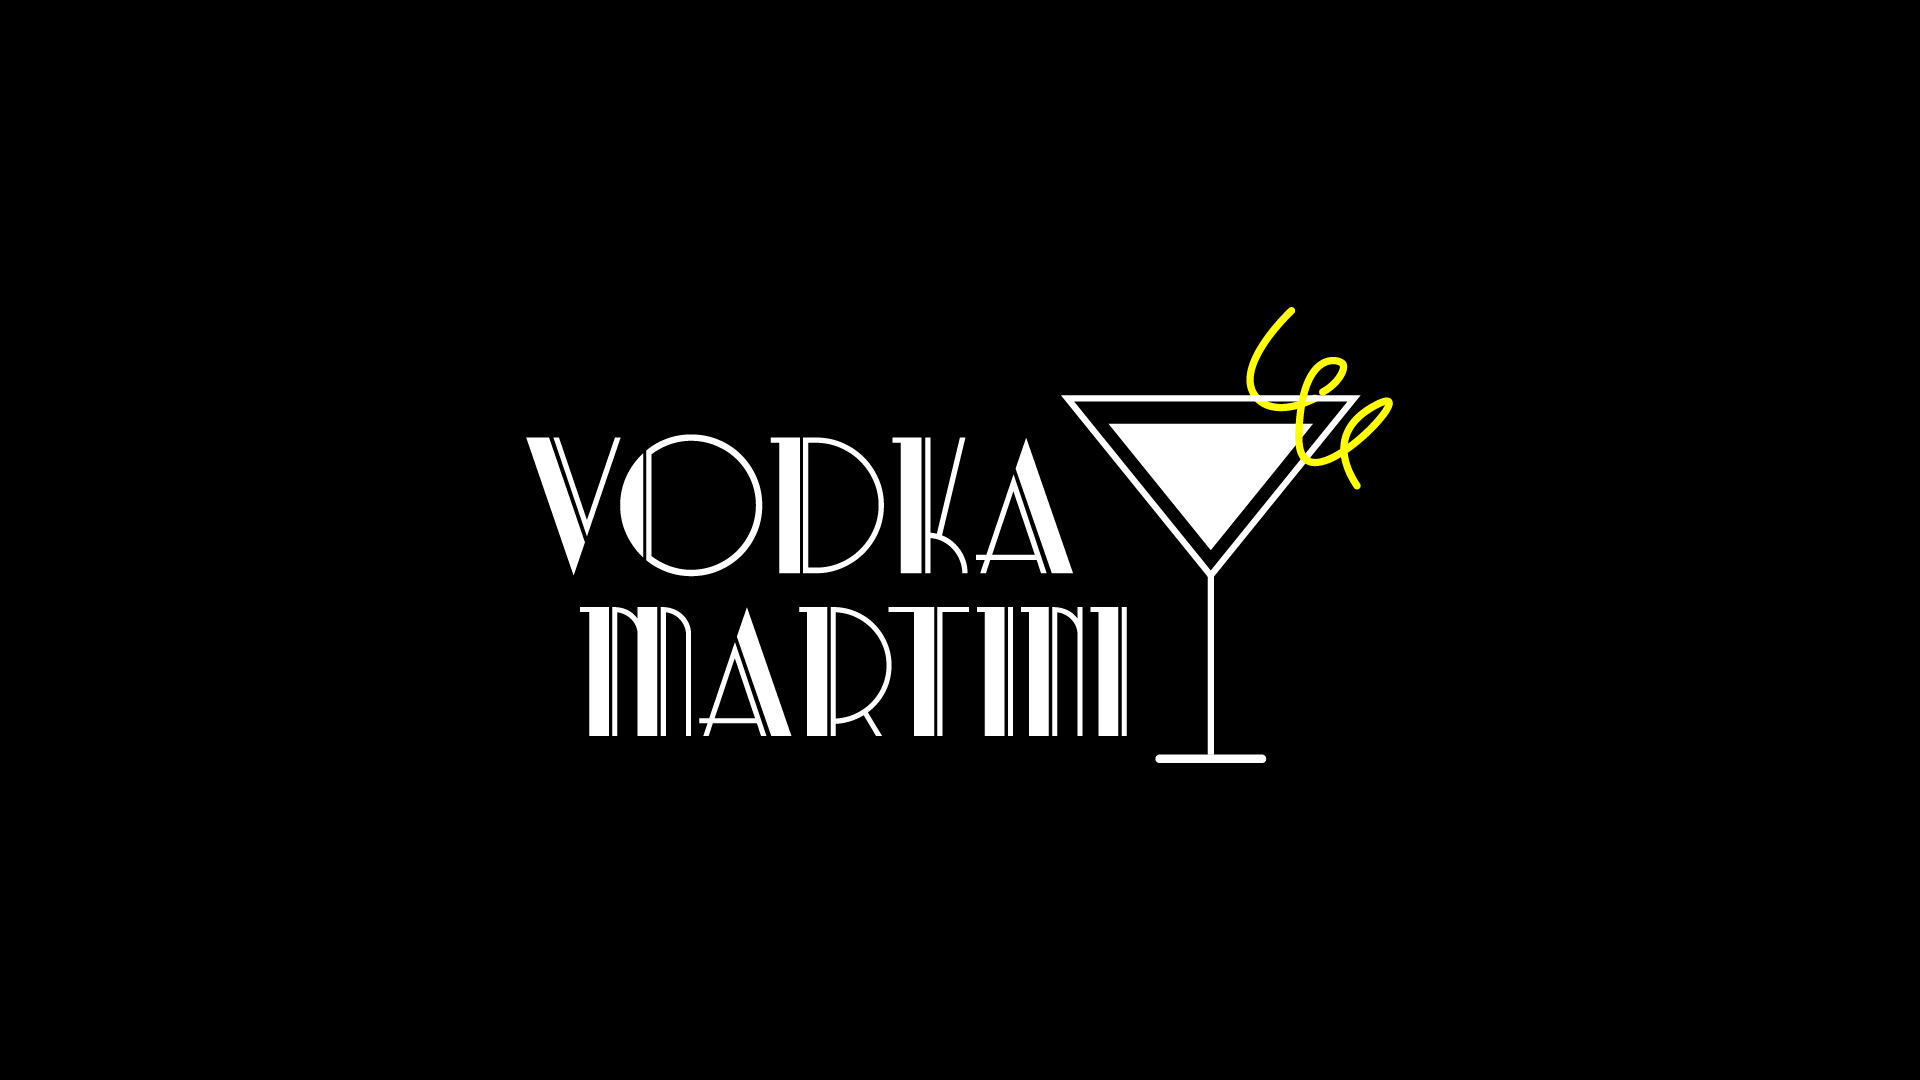 Vodka Martini_Compo-01.jpg